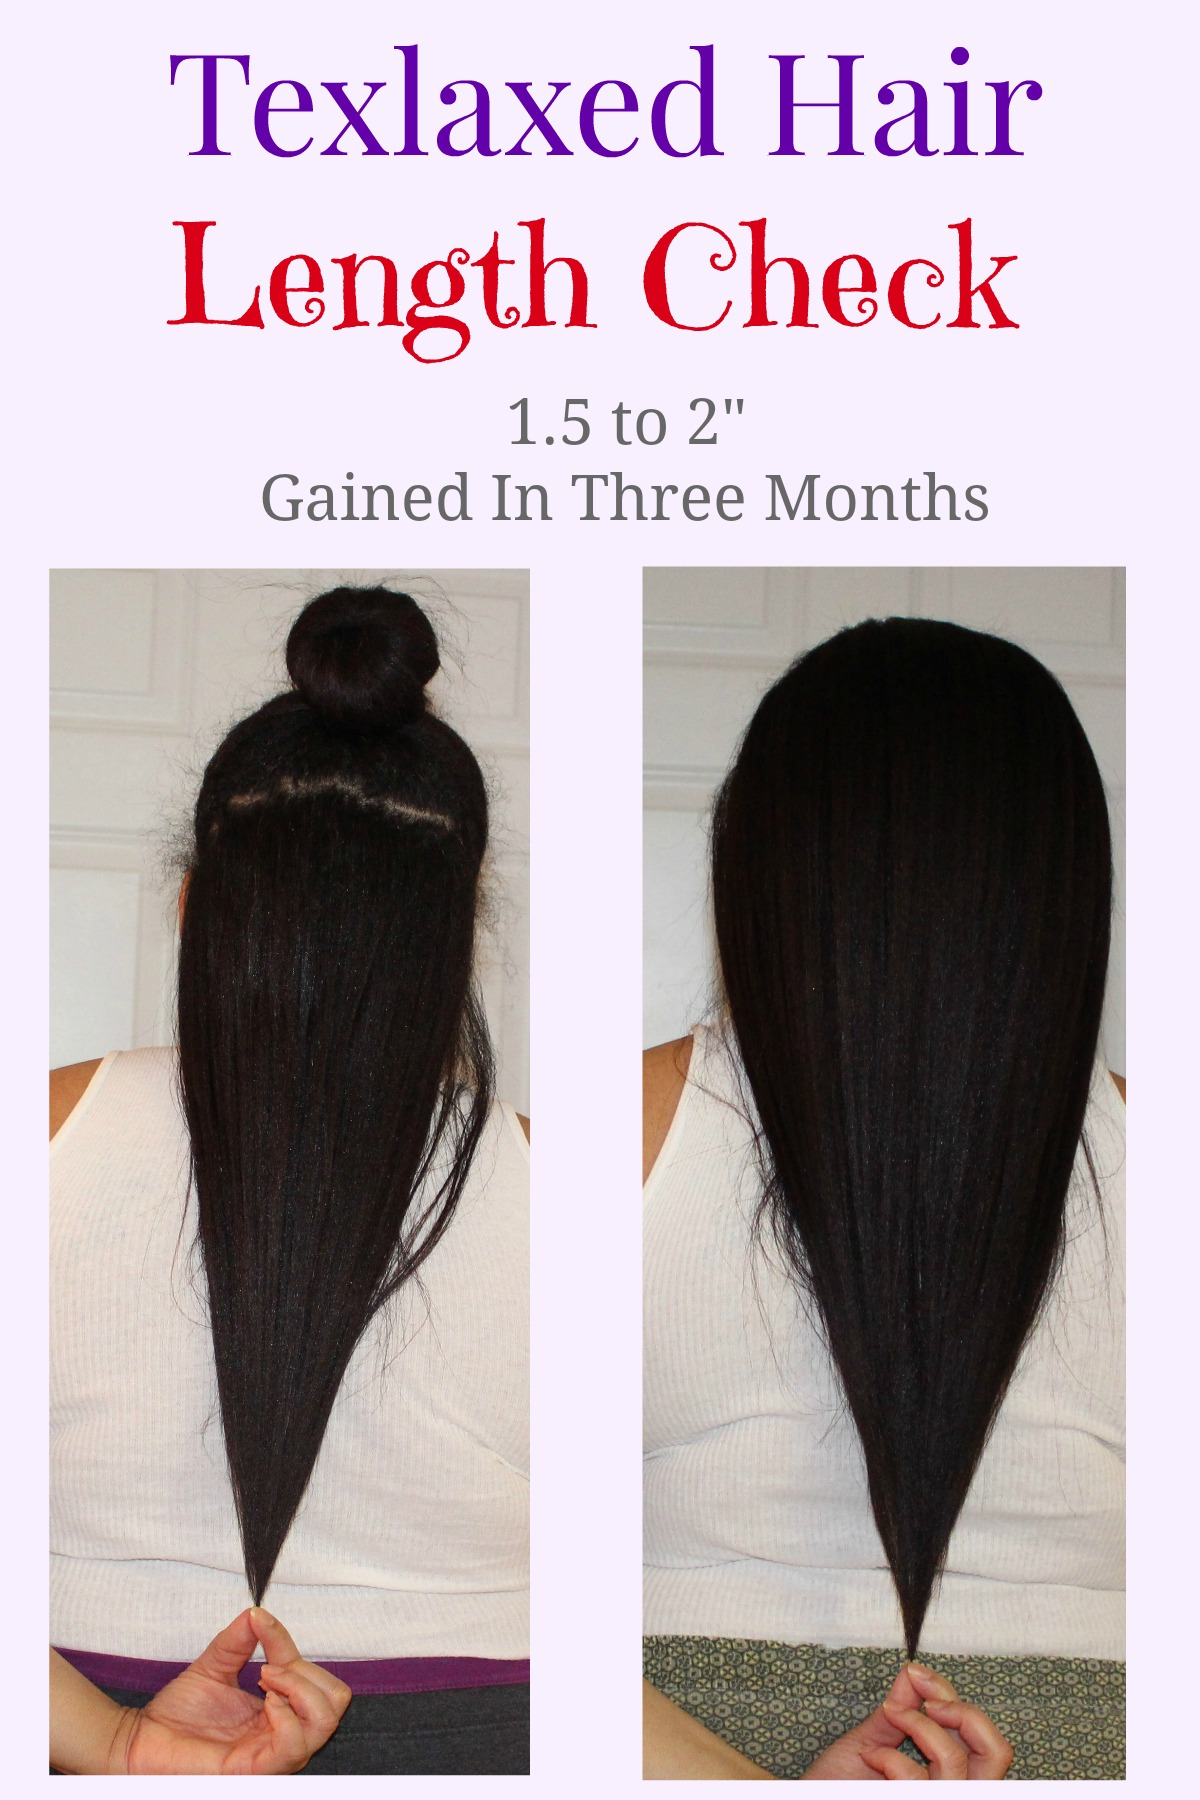 Texlaxed Hair Length Check Comparison